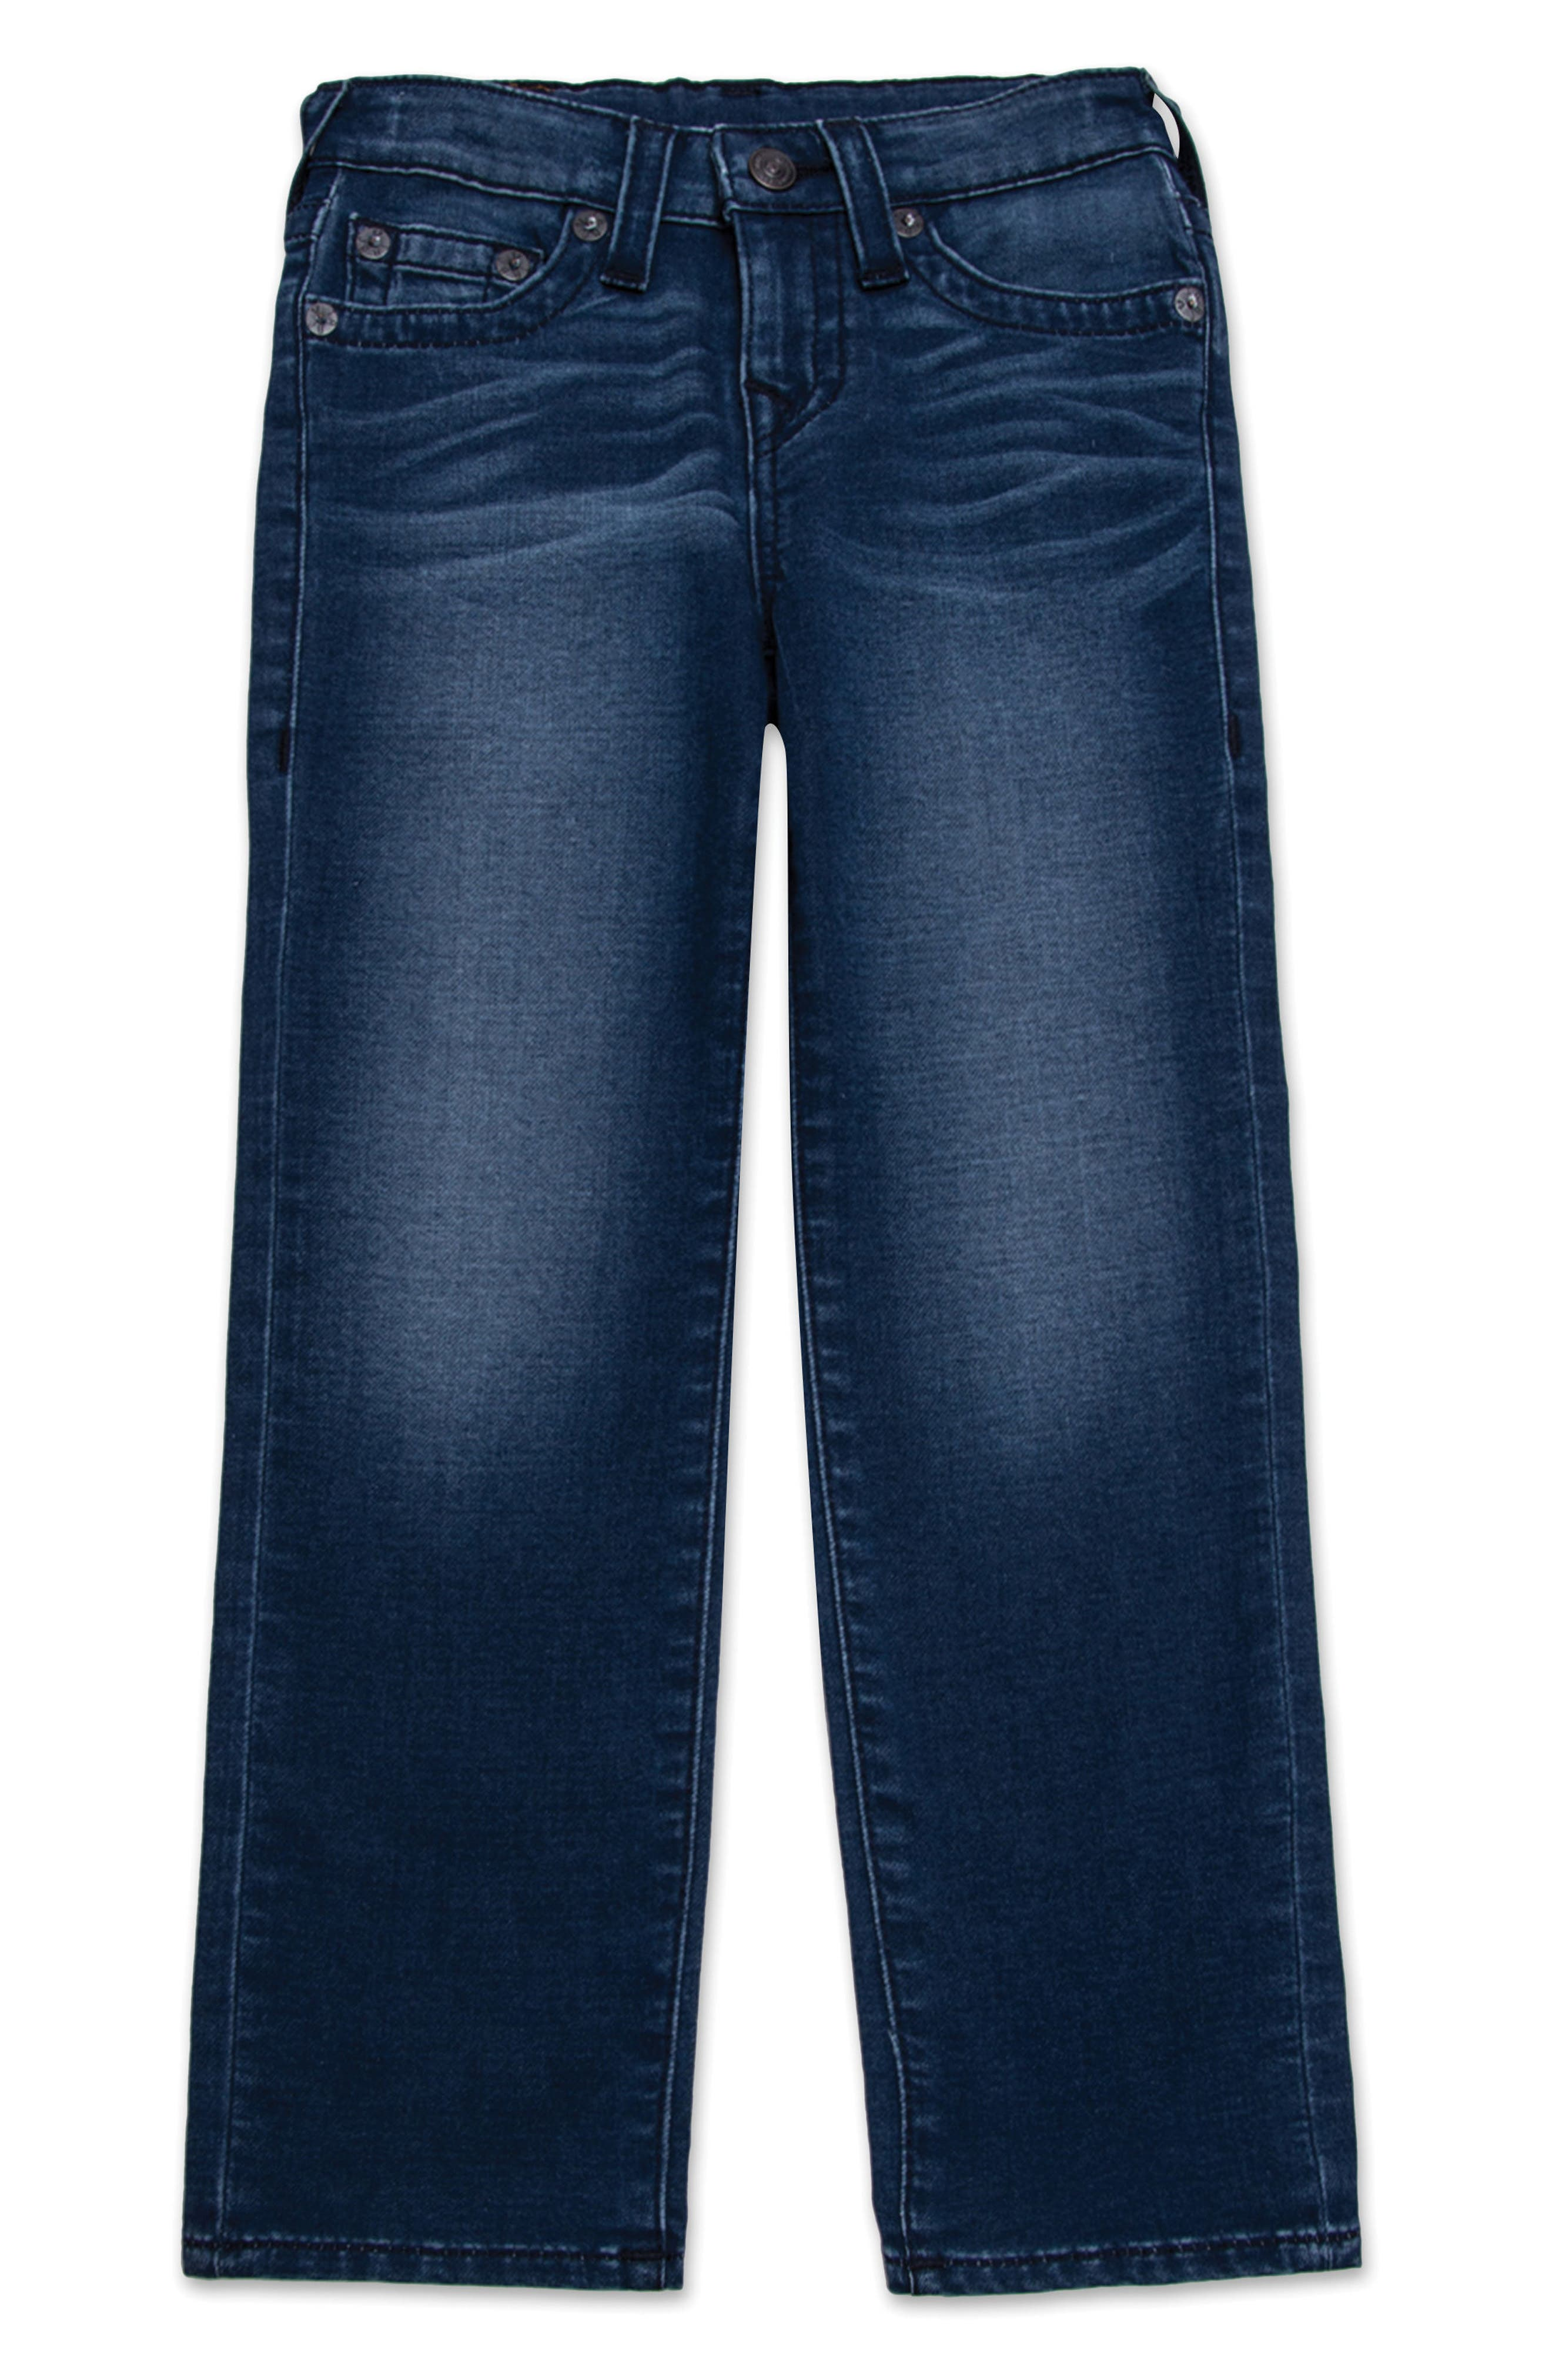 Main Image - True Religion Brand Jeans Geno Single End Straight Leg Jeans (Toddler Boys & Little Boys)